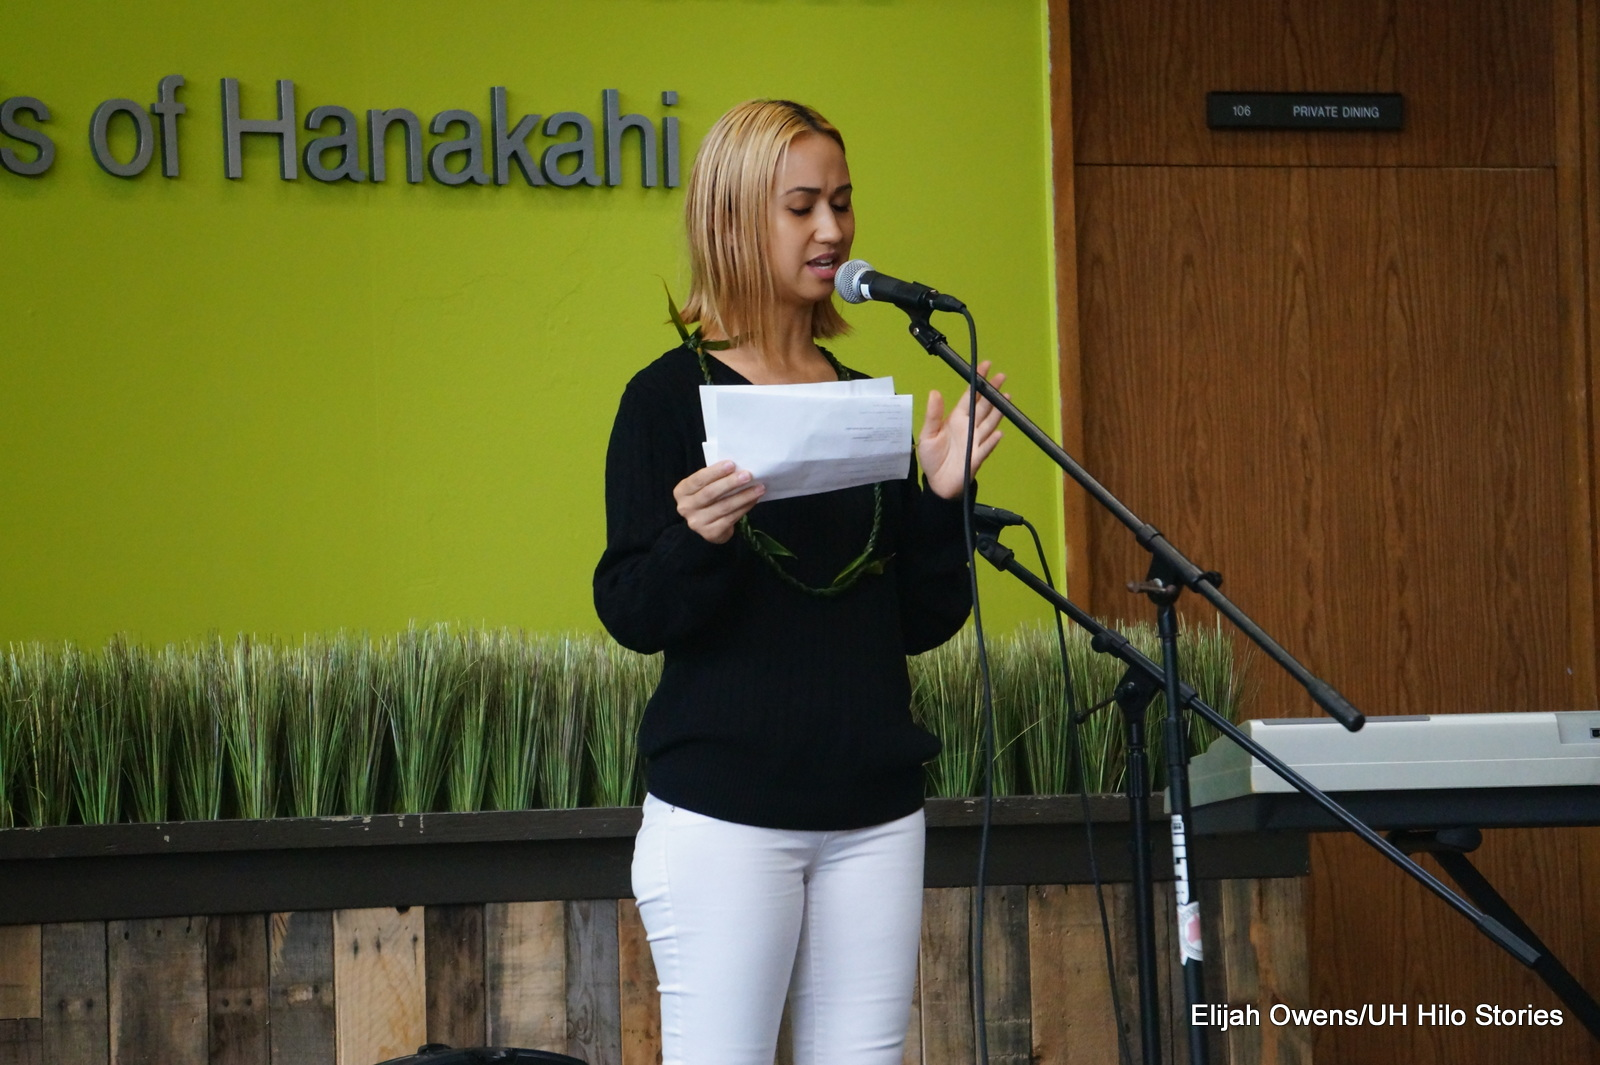 Young woman at mic, black top, white pants, reading from a piece of paper.